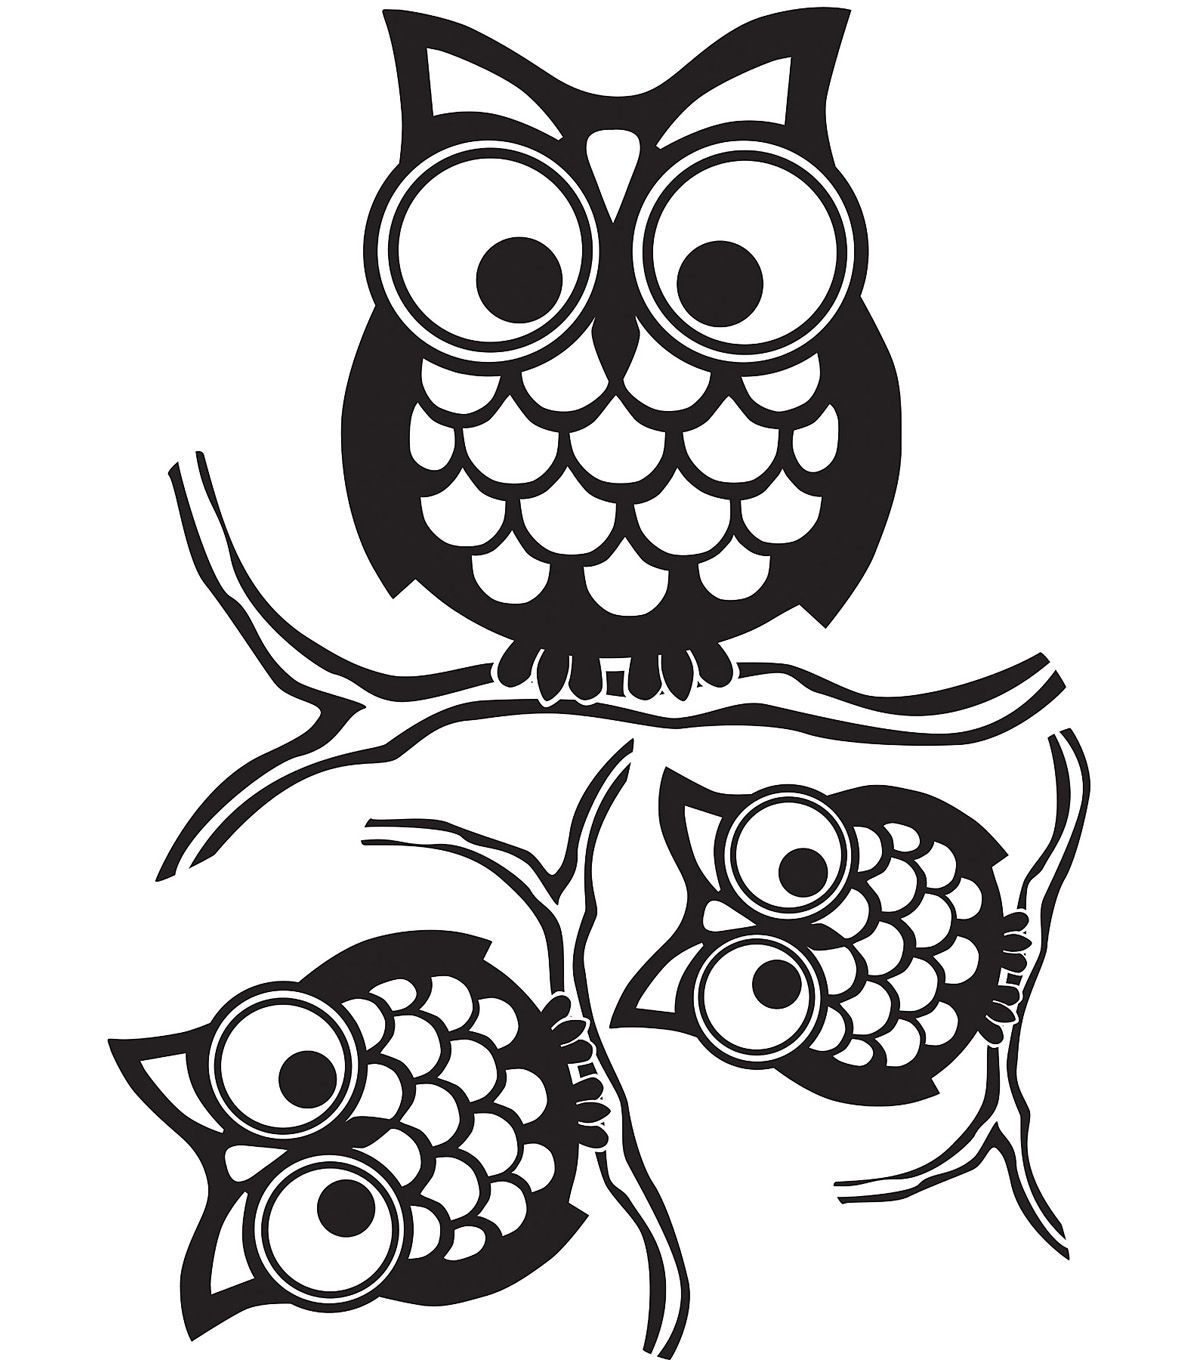 Wall Pops Give A Hoot Wall Art Decal Kit 3 Piece Set